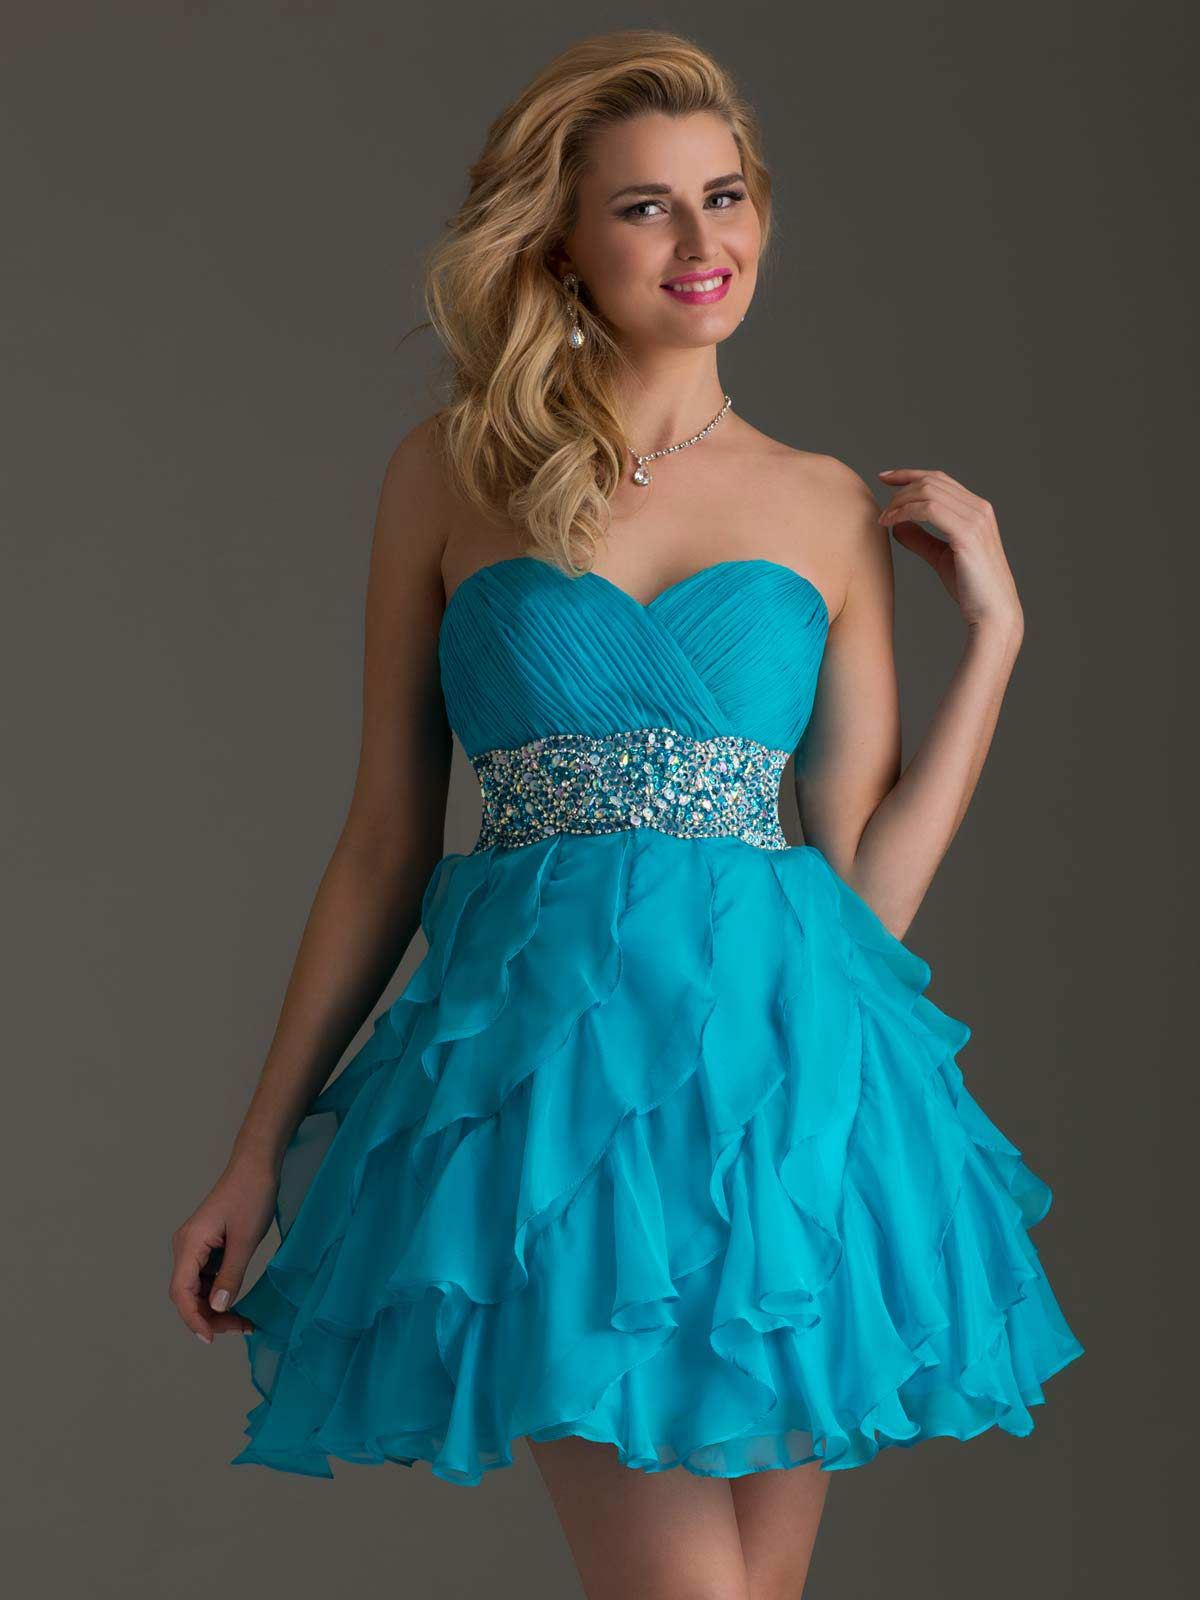 Clarisse 2014 Homecoming Dress 2460 | Promgirl.net